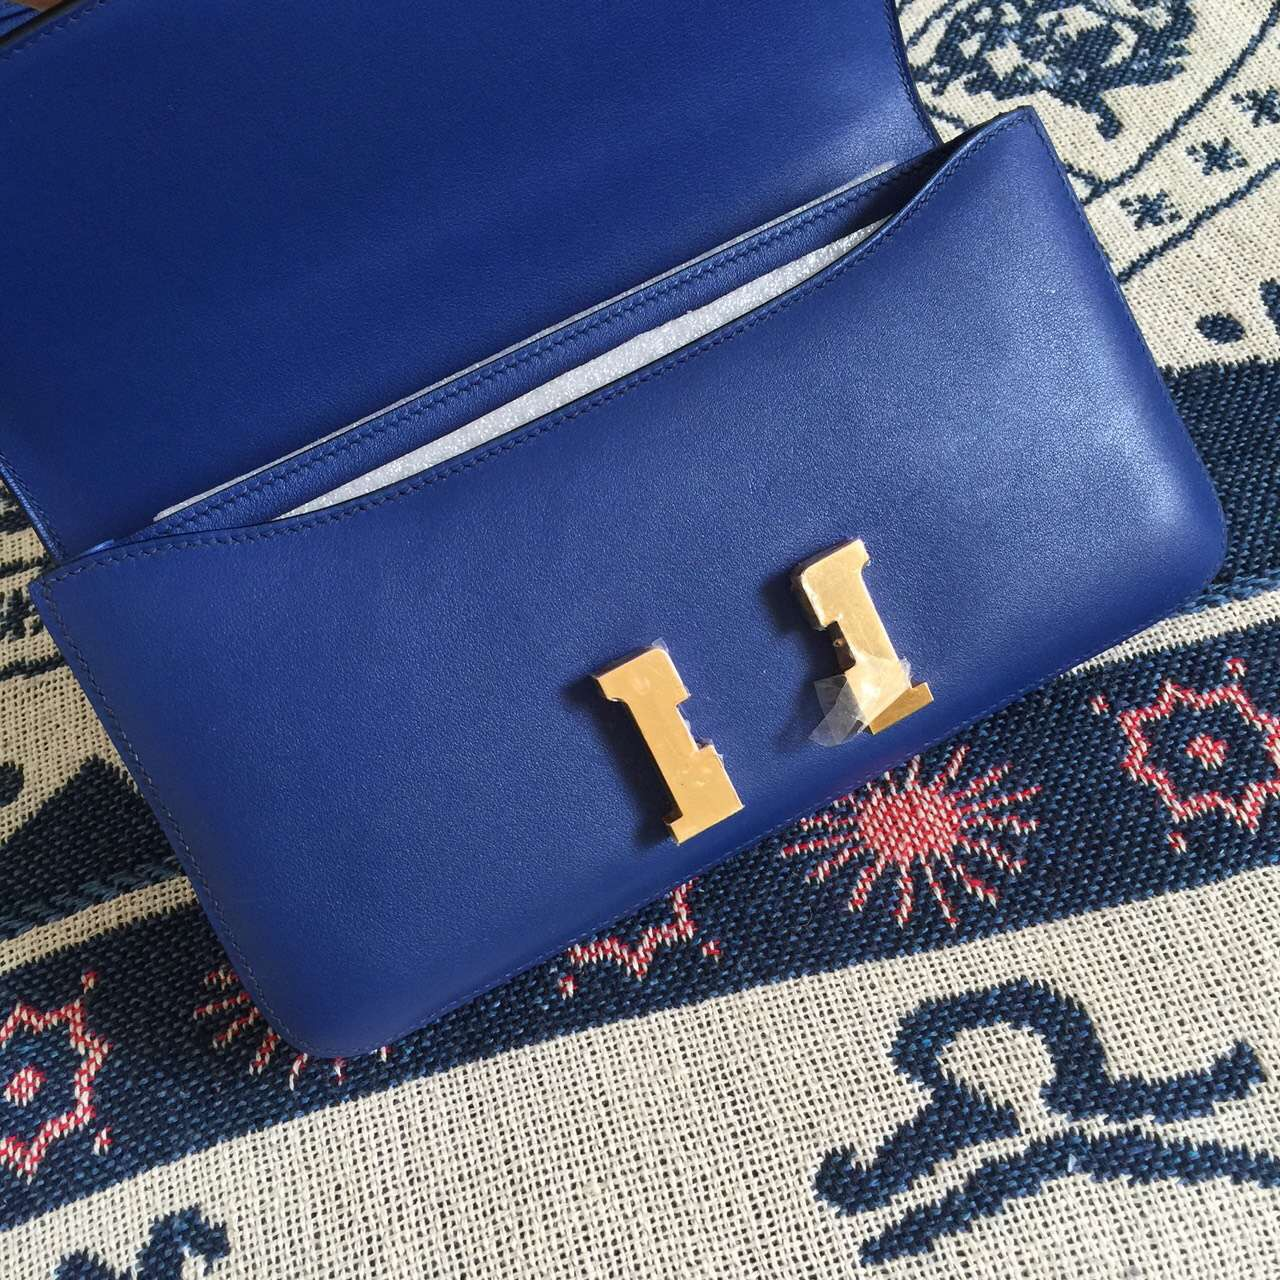 Hermes 7T Blue Electric Swift Leather Constance Bag Women's Cross-body Bag